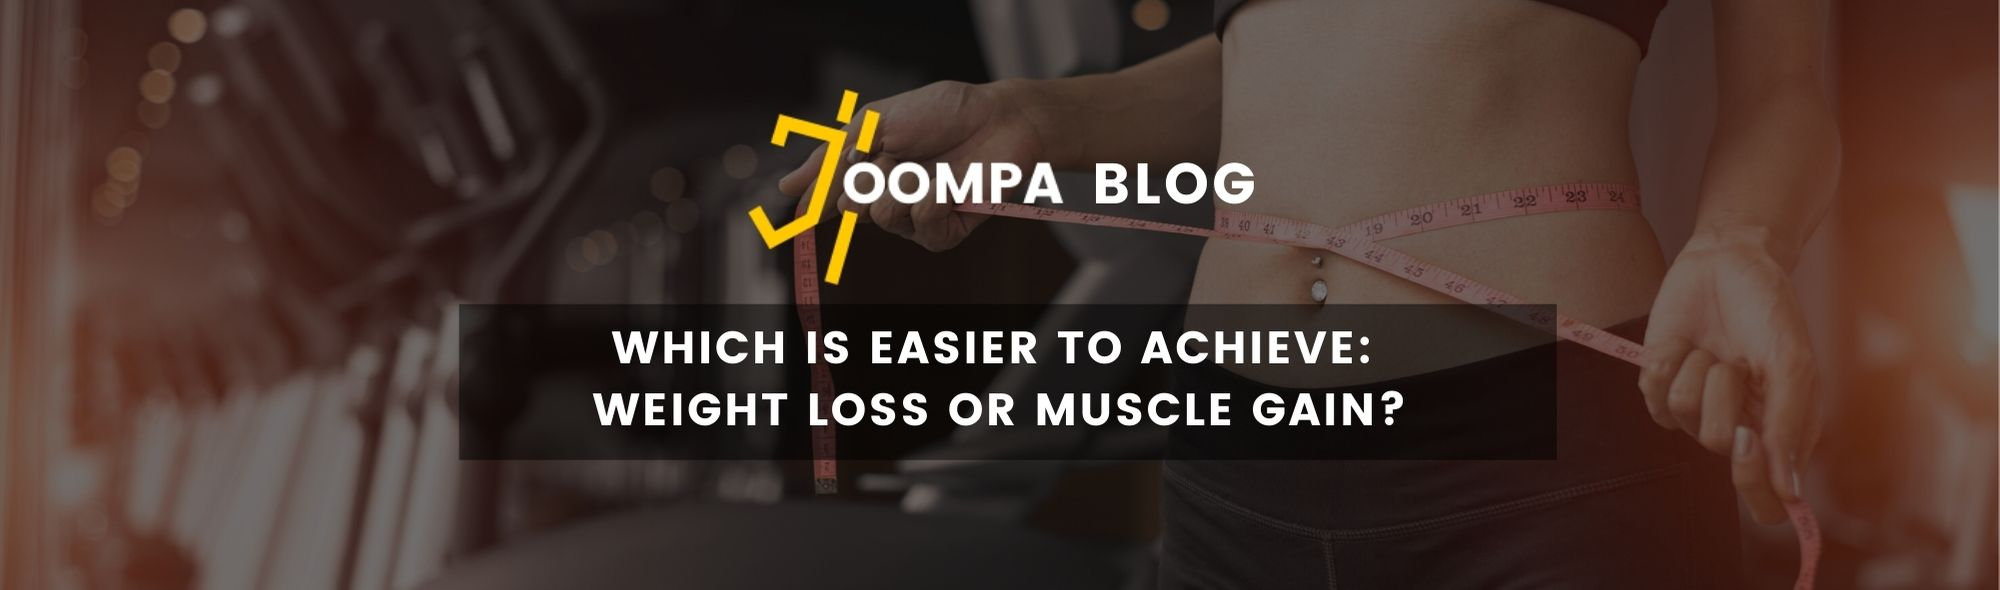 Which is Easier To Achieve: Weight Loss or Muscle Gain?